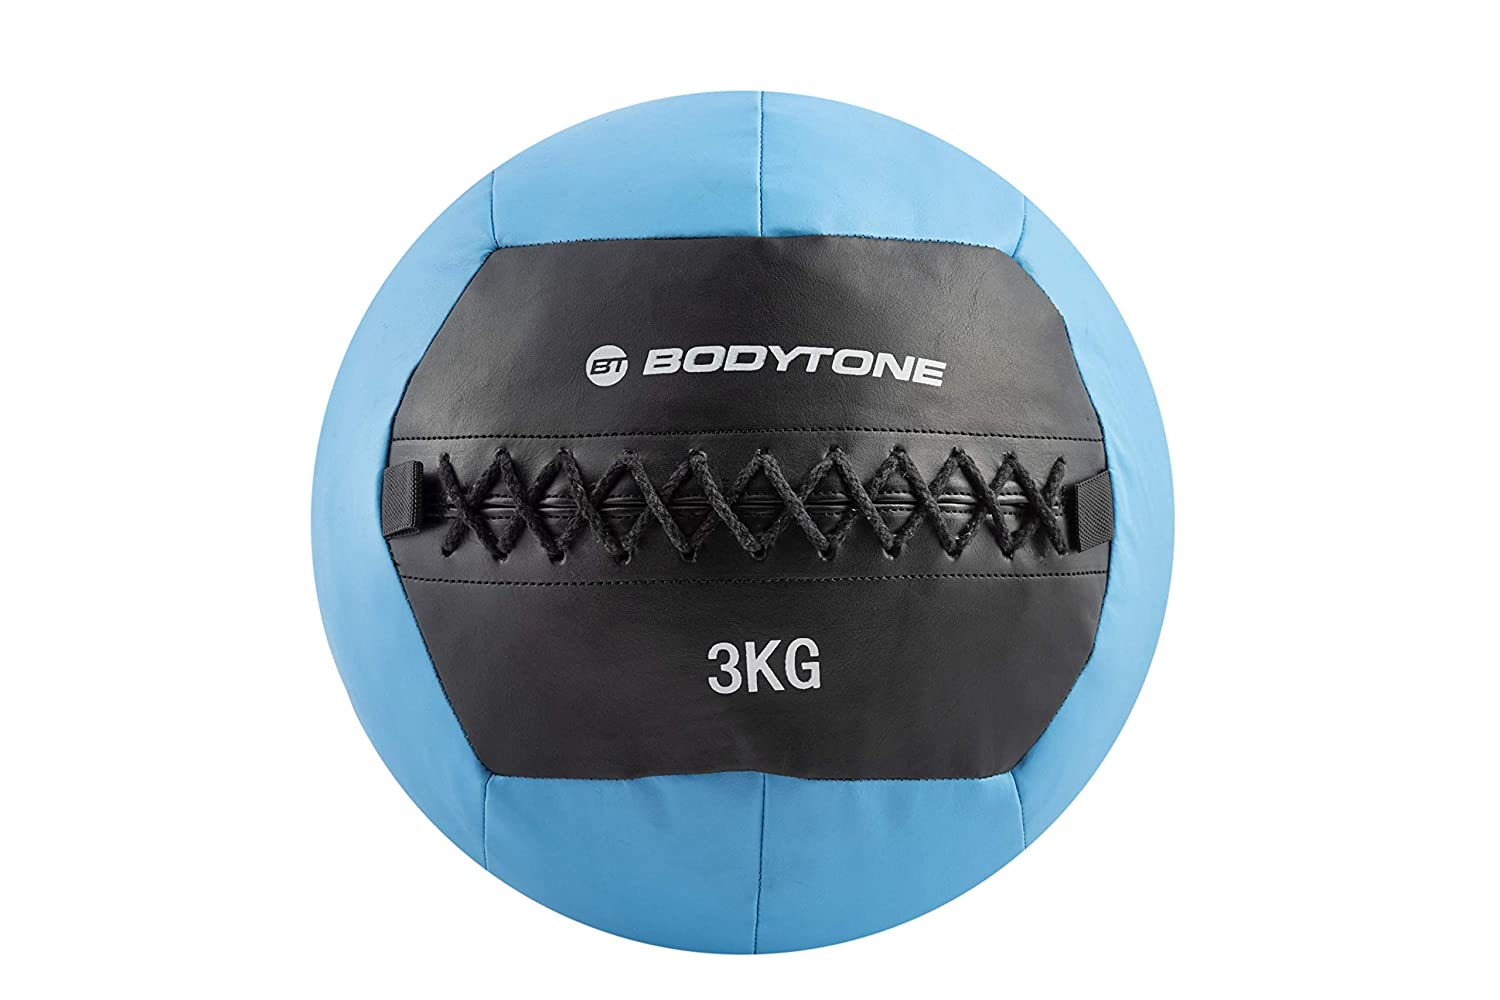 BT BODYTONE Soft Wall Ball de 3kg. Balón Medicinal de Color Azul ...